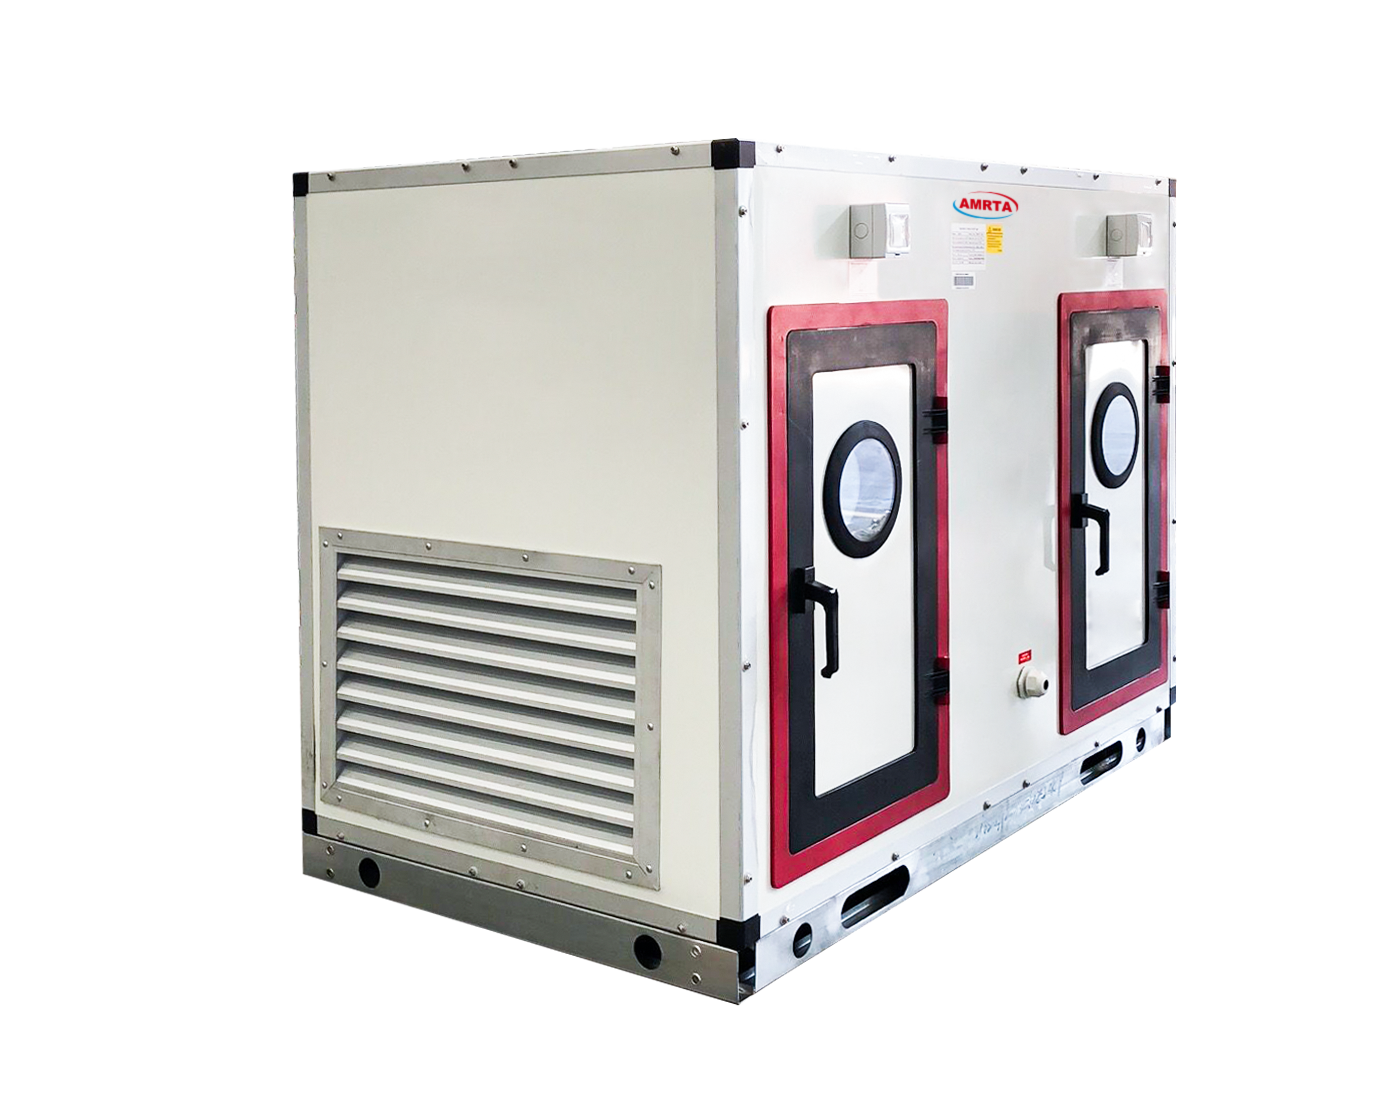 DX type Air Handling Unit